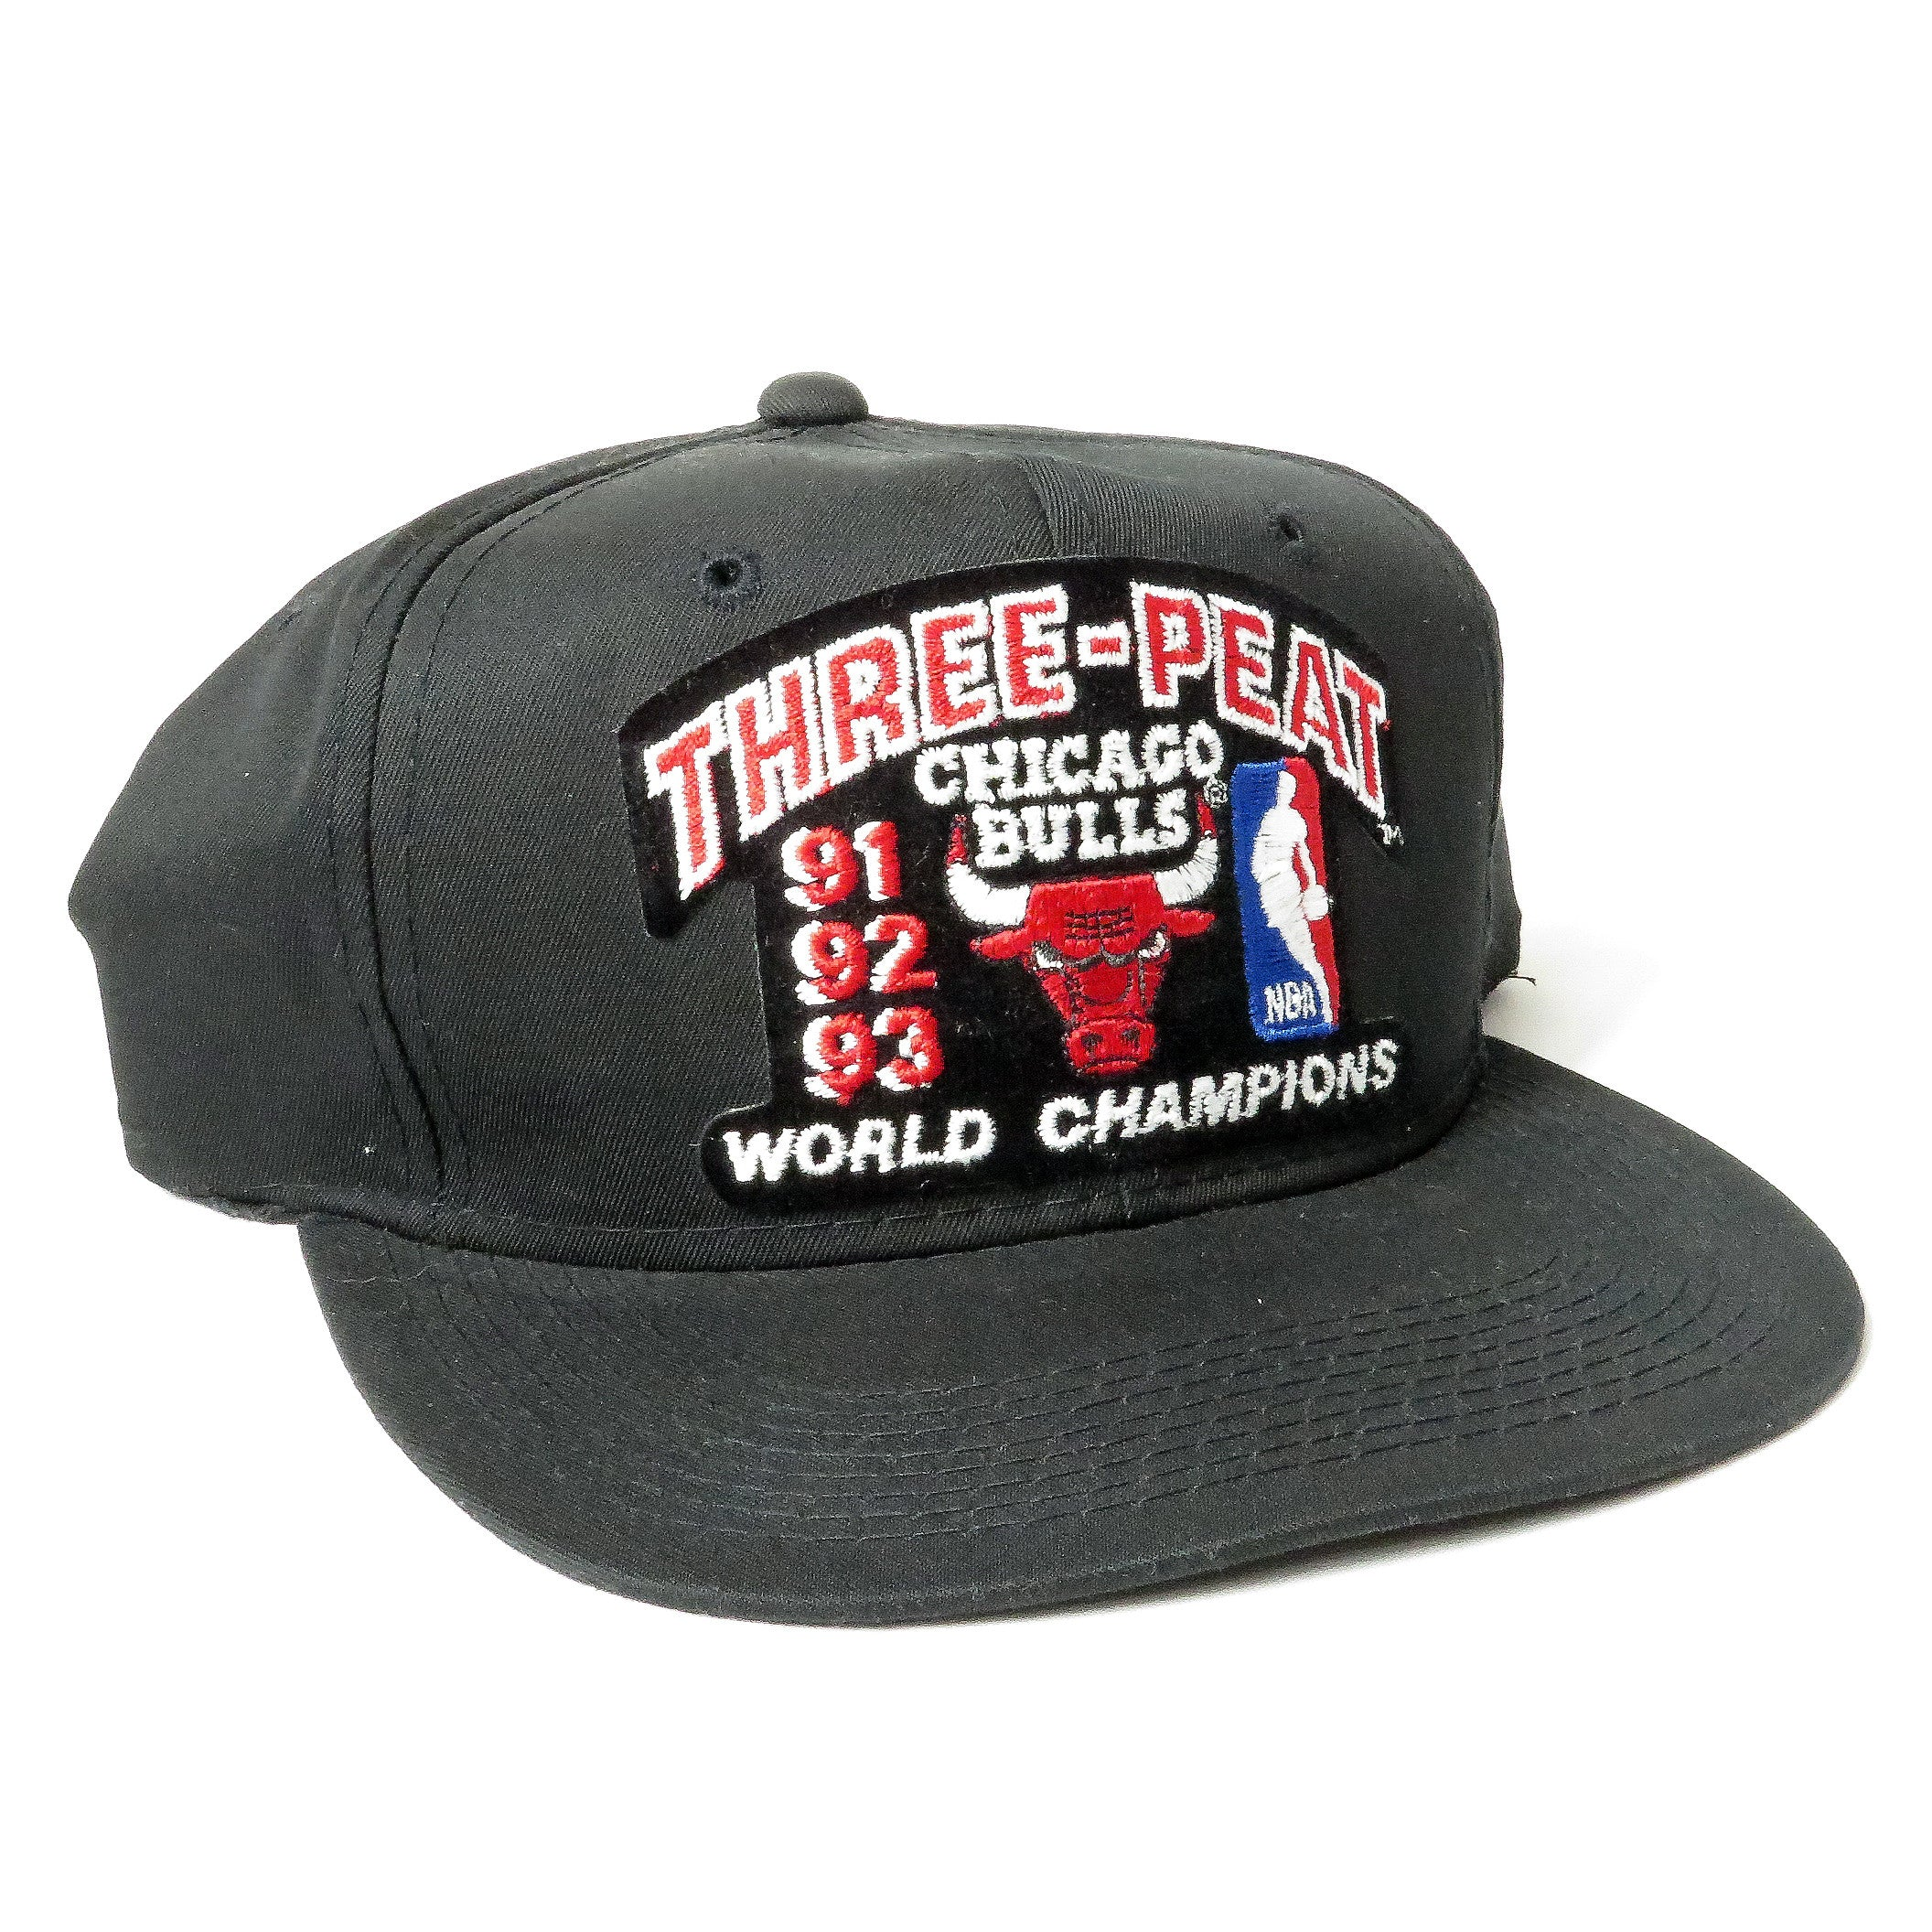 Vintage Chicago Bulls Three Peat World Champions Snapback Hat